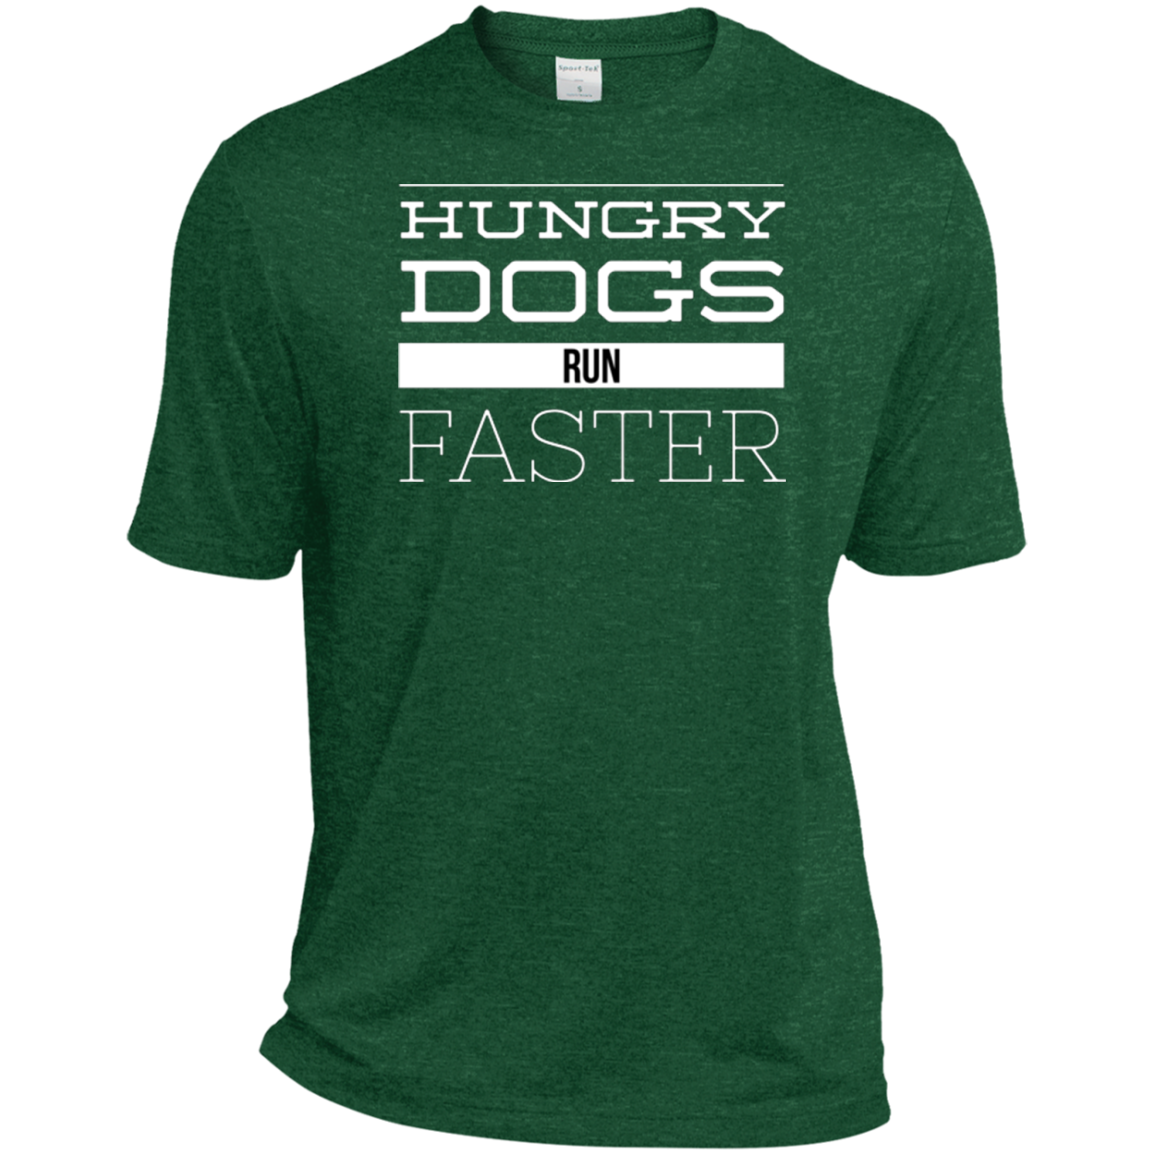 Hungry Dogs Heather Dri-Fit Moisture-Wicking T-Shirt - PhillyFandom T-Shirts - Shirts PhillyFandom Philly Sports Tees